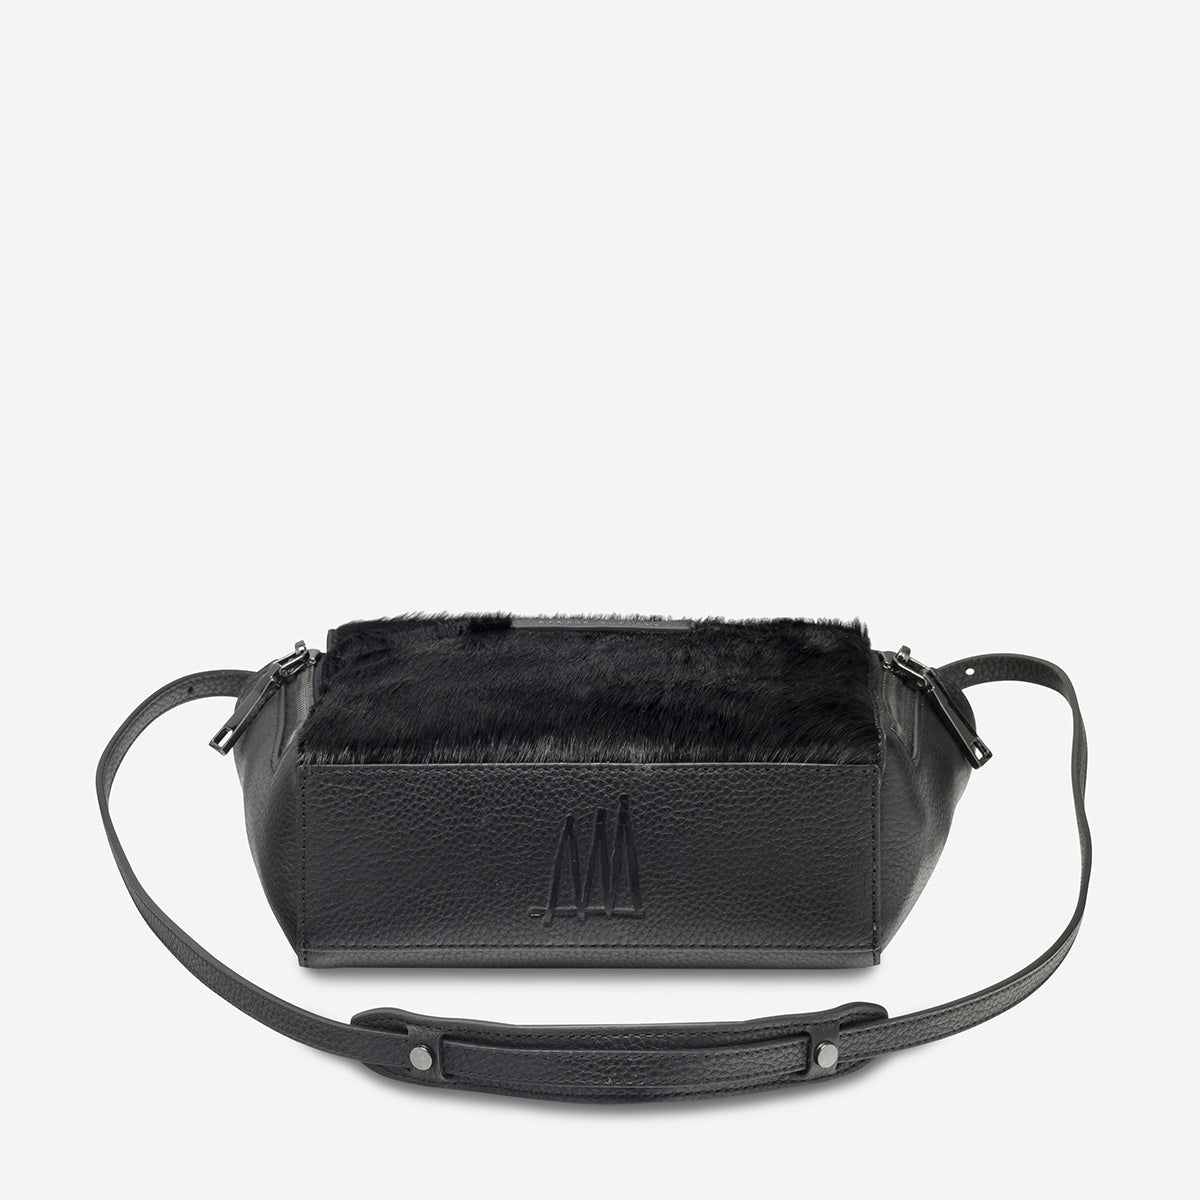 Status Anxiety The Ascendants Women's Leather Crossbody Bag - Black/Black Fur